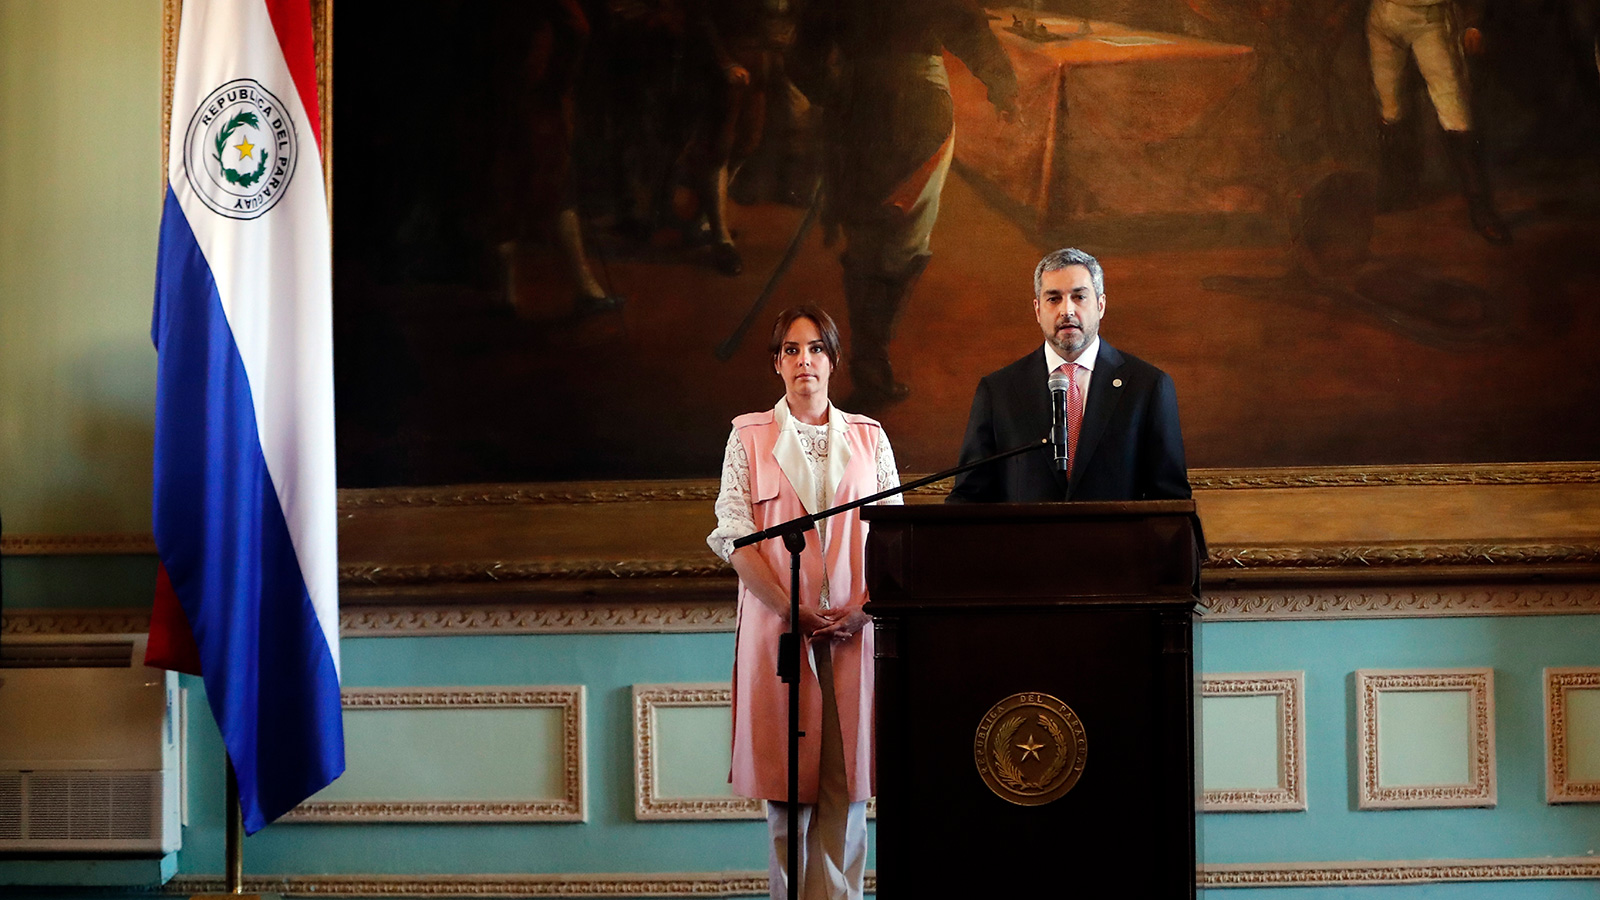 In this August 1, 2019 file photo, Paraguay's First Lady Silvana López Moreira stands next to her husband President Mario Abdo Benitez as he speaks to the nation from the Palacio de Lopez in Asuncion, Paraguay.